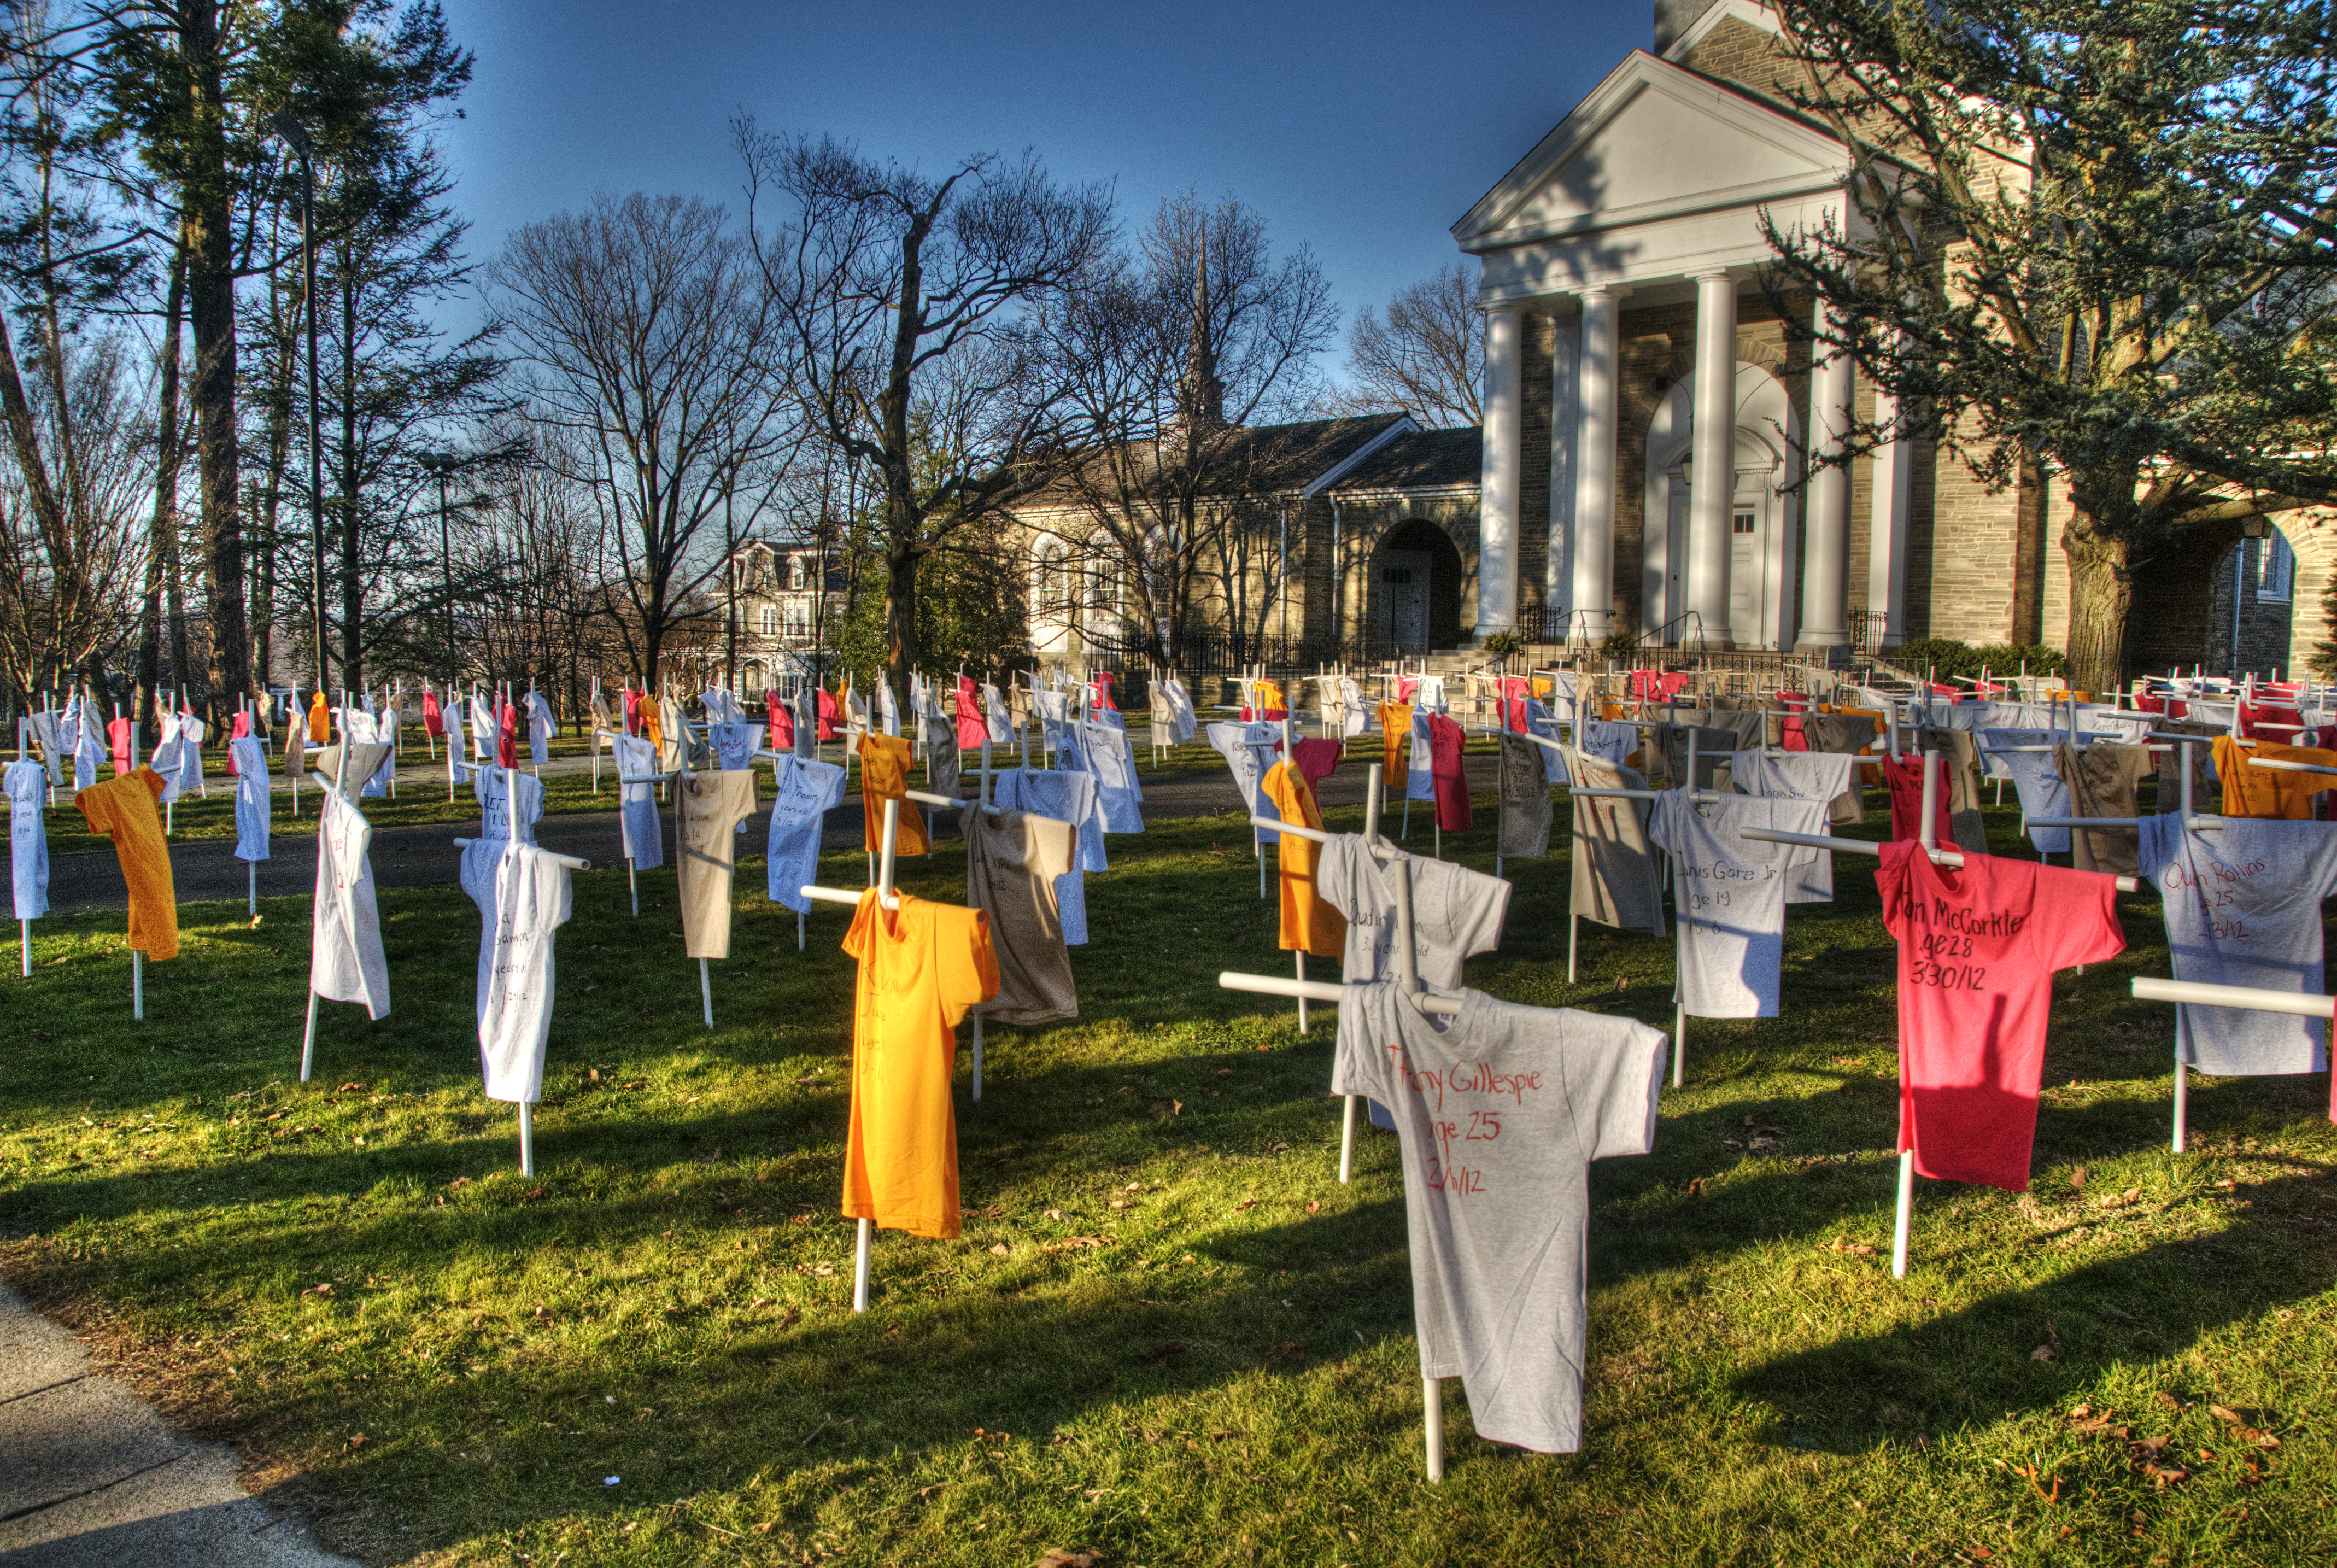 A gun violence for memorial marking each fatality in Philadelphia in 2012. Credit: Cocoabiscuit/Flickr